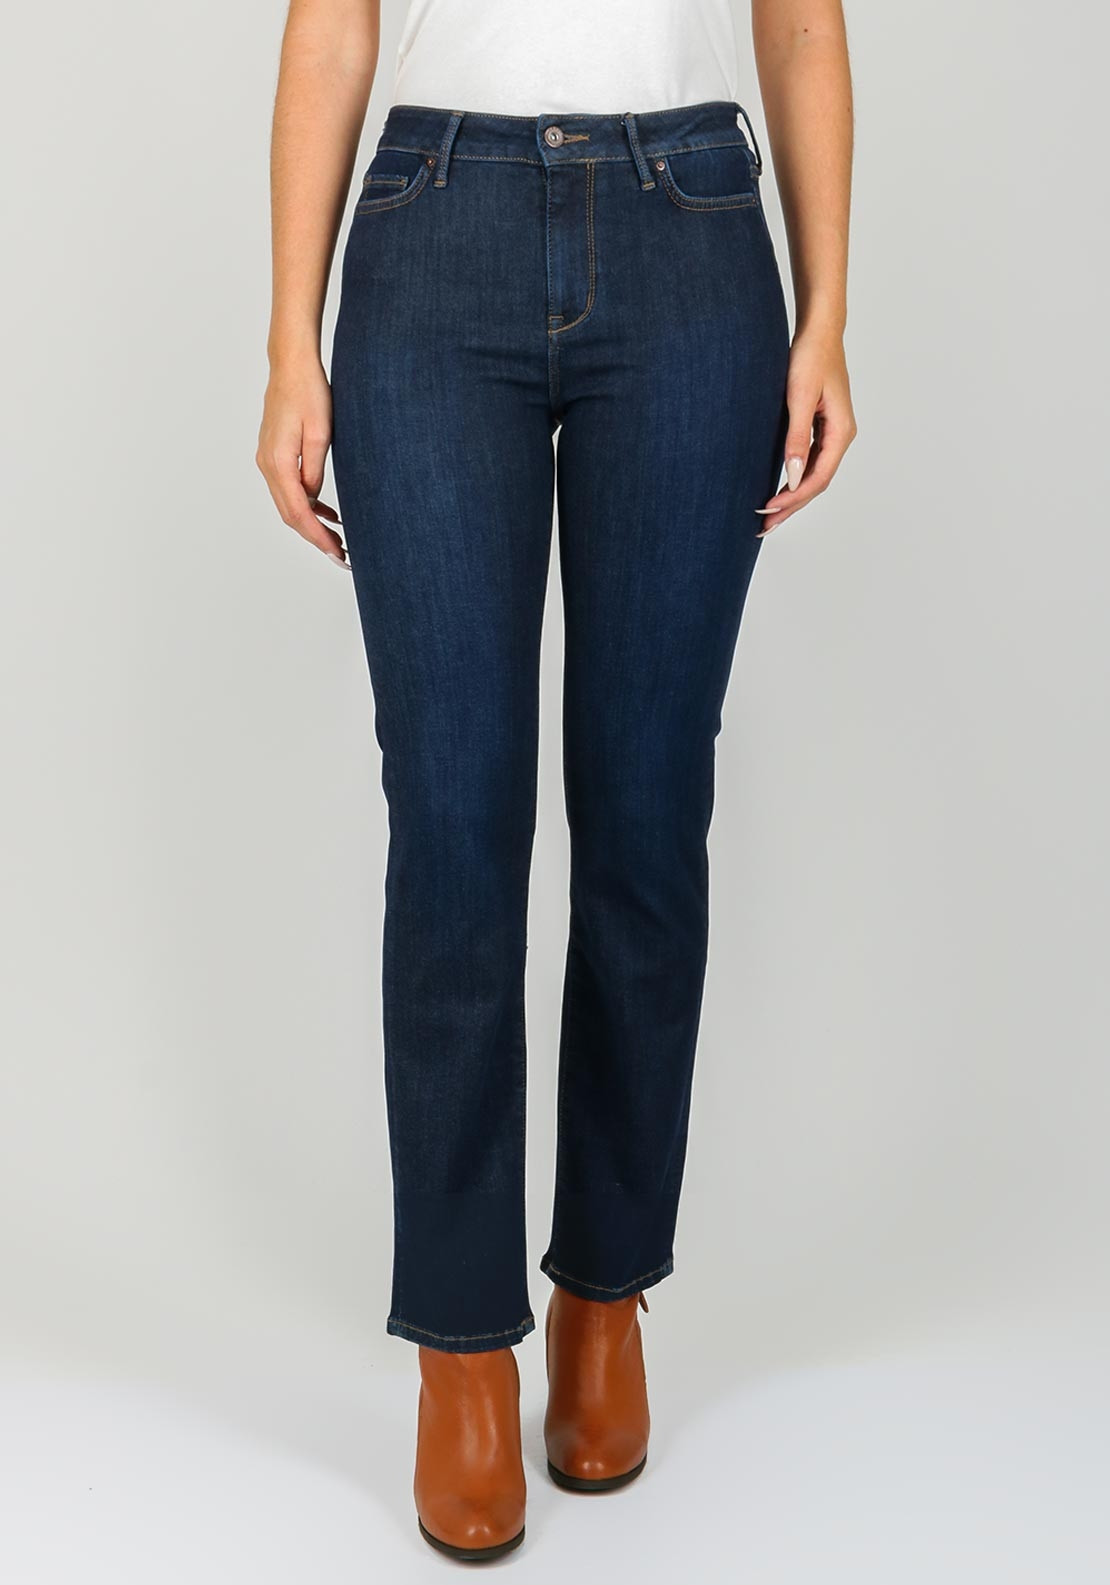 f0a1068a Tommy Hilfiger Womens Lisbon Straight Jeans, Navy. Be the first to review  this product